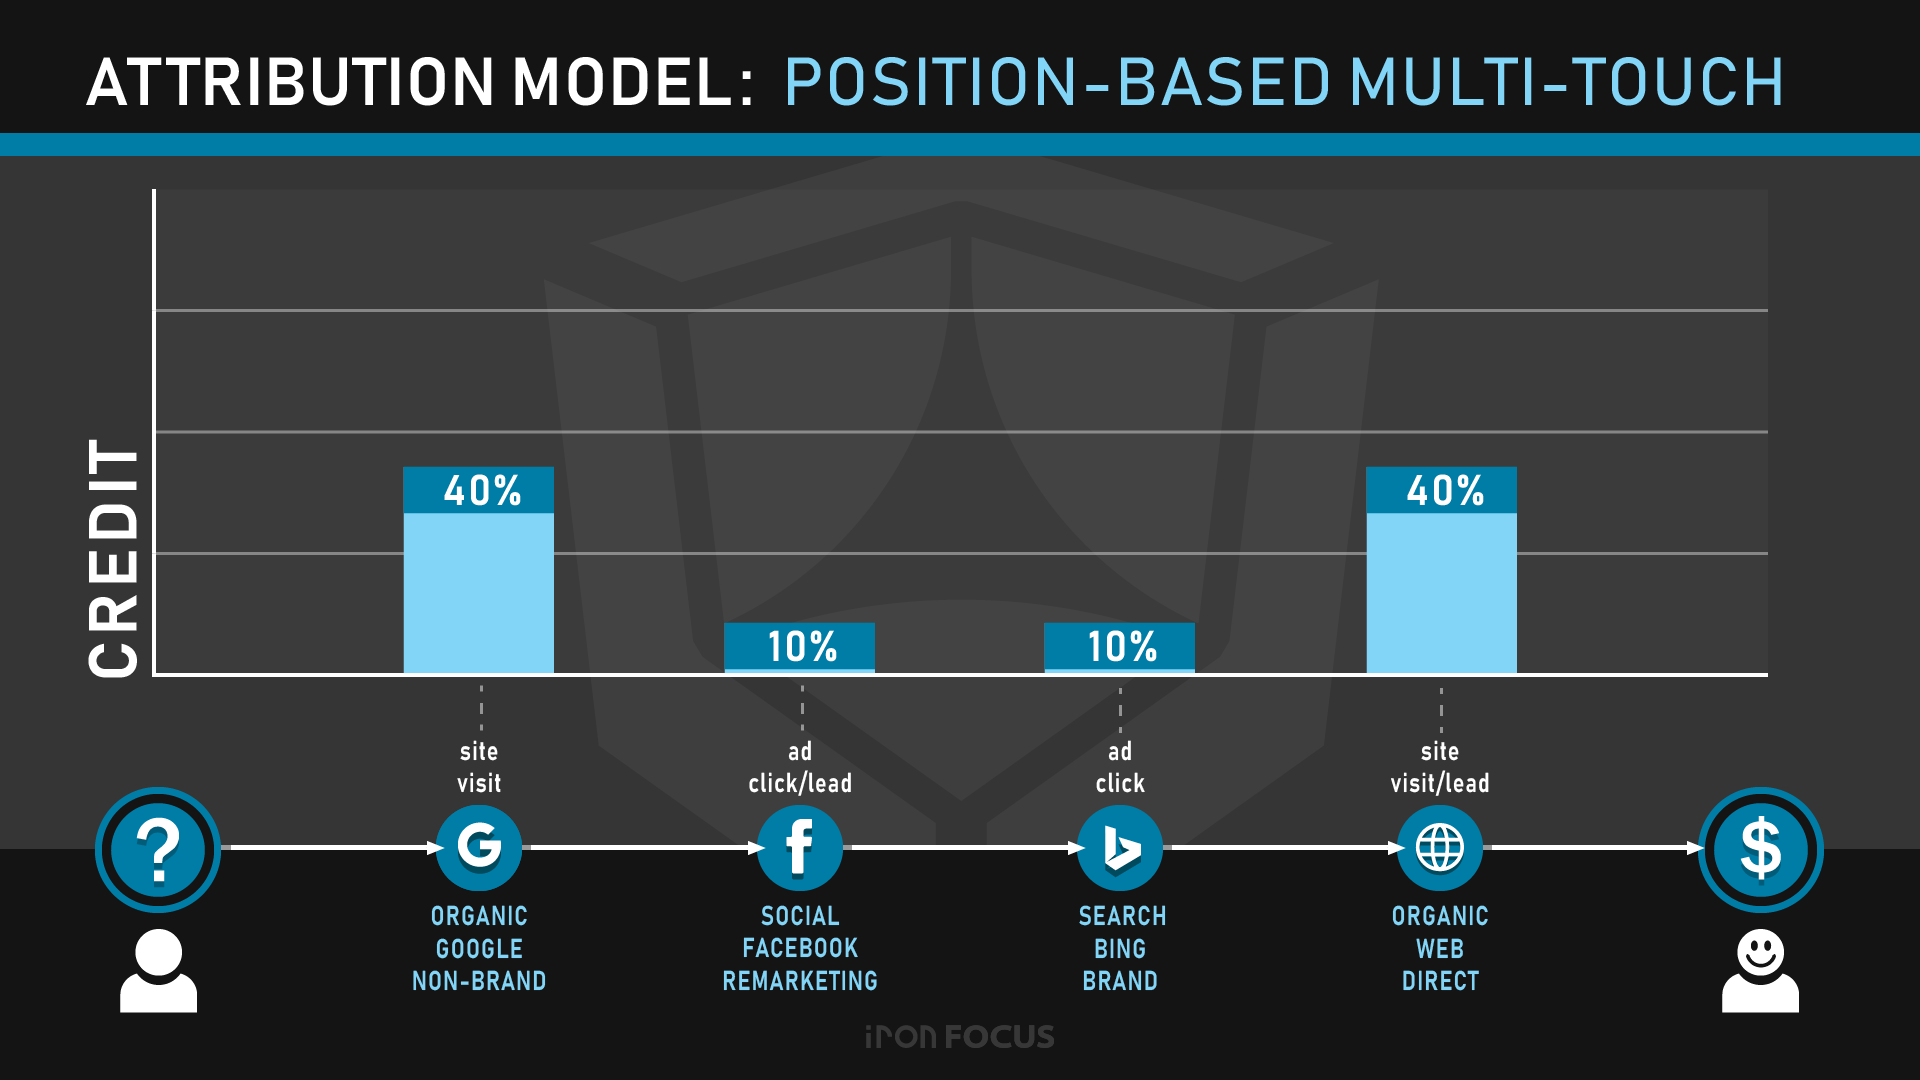 Attribution Model: Position-Based Multi-Touch